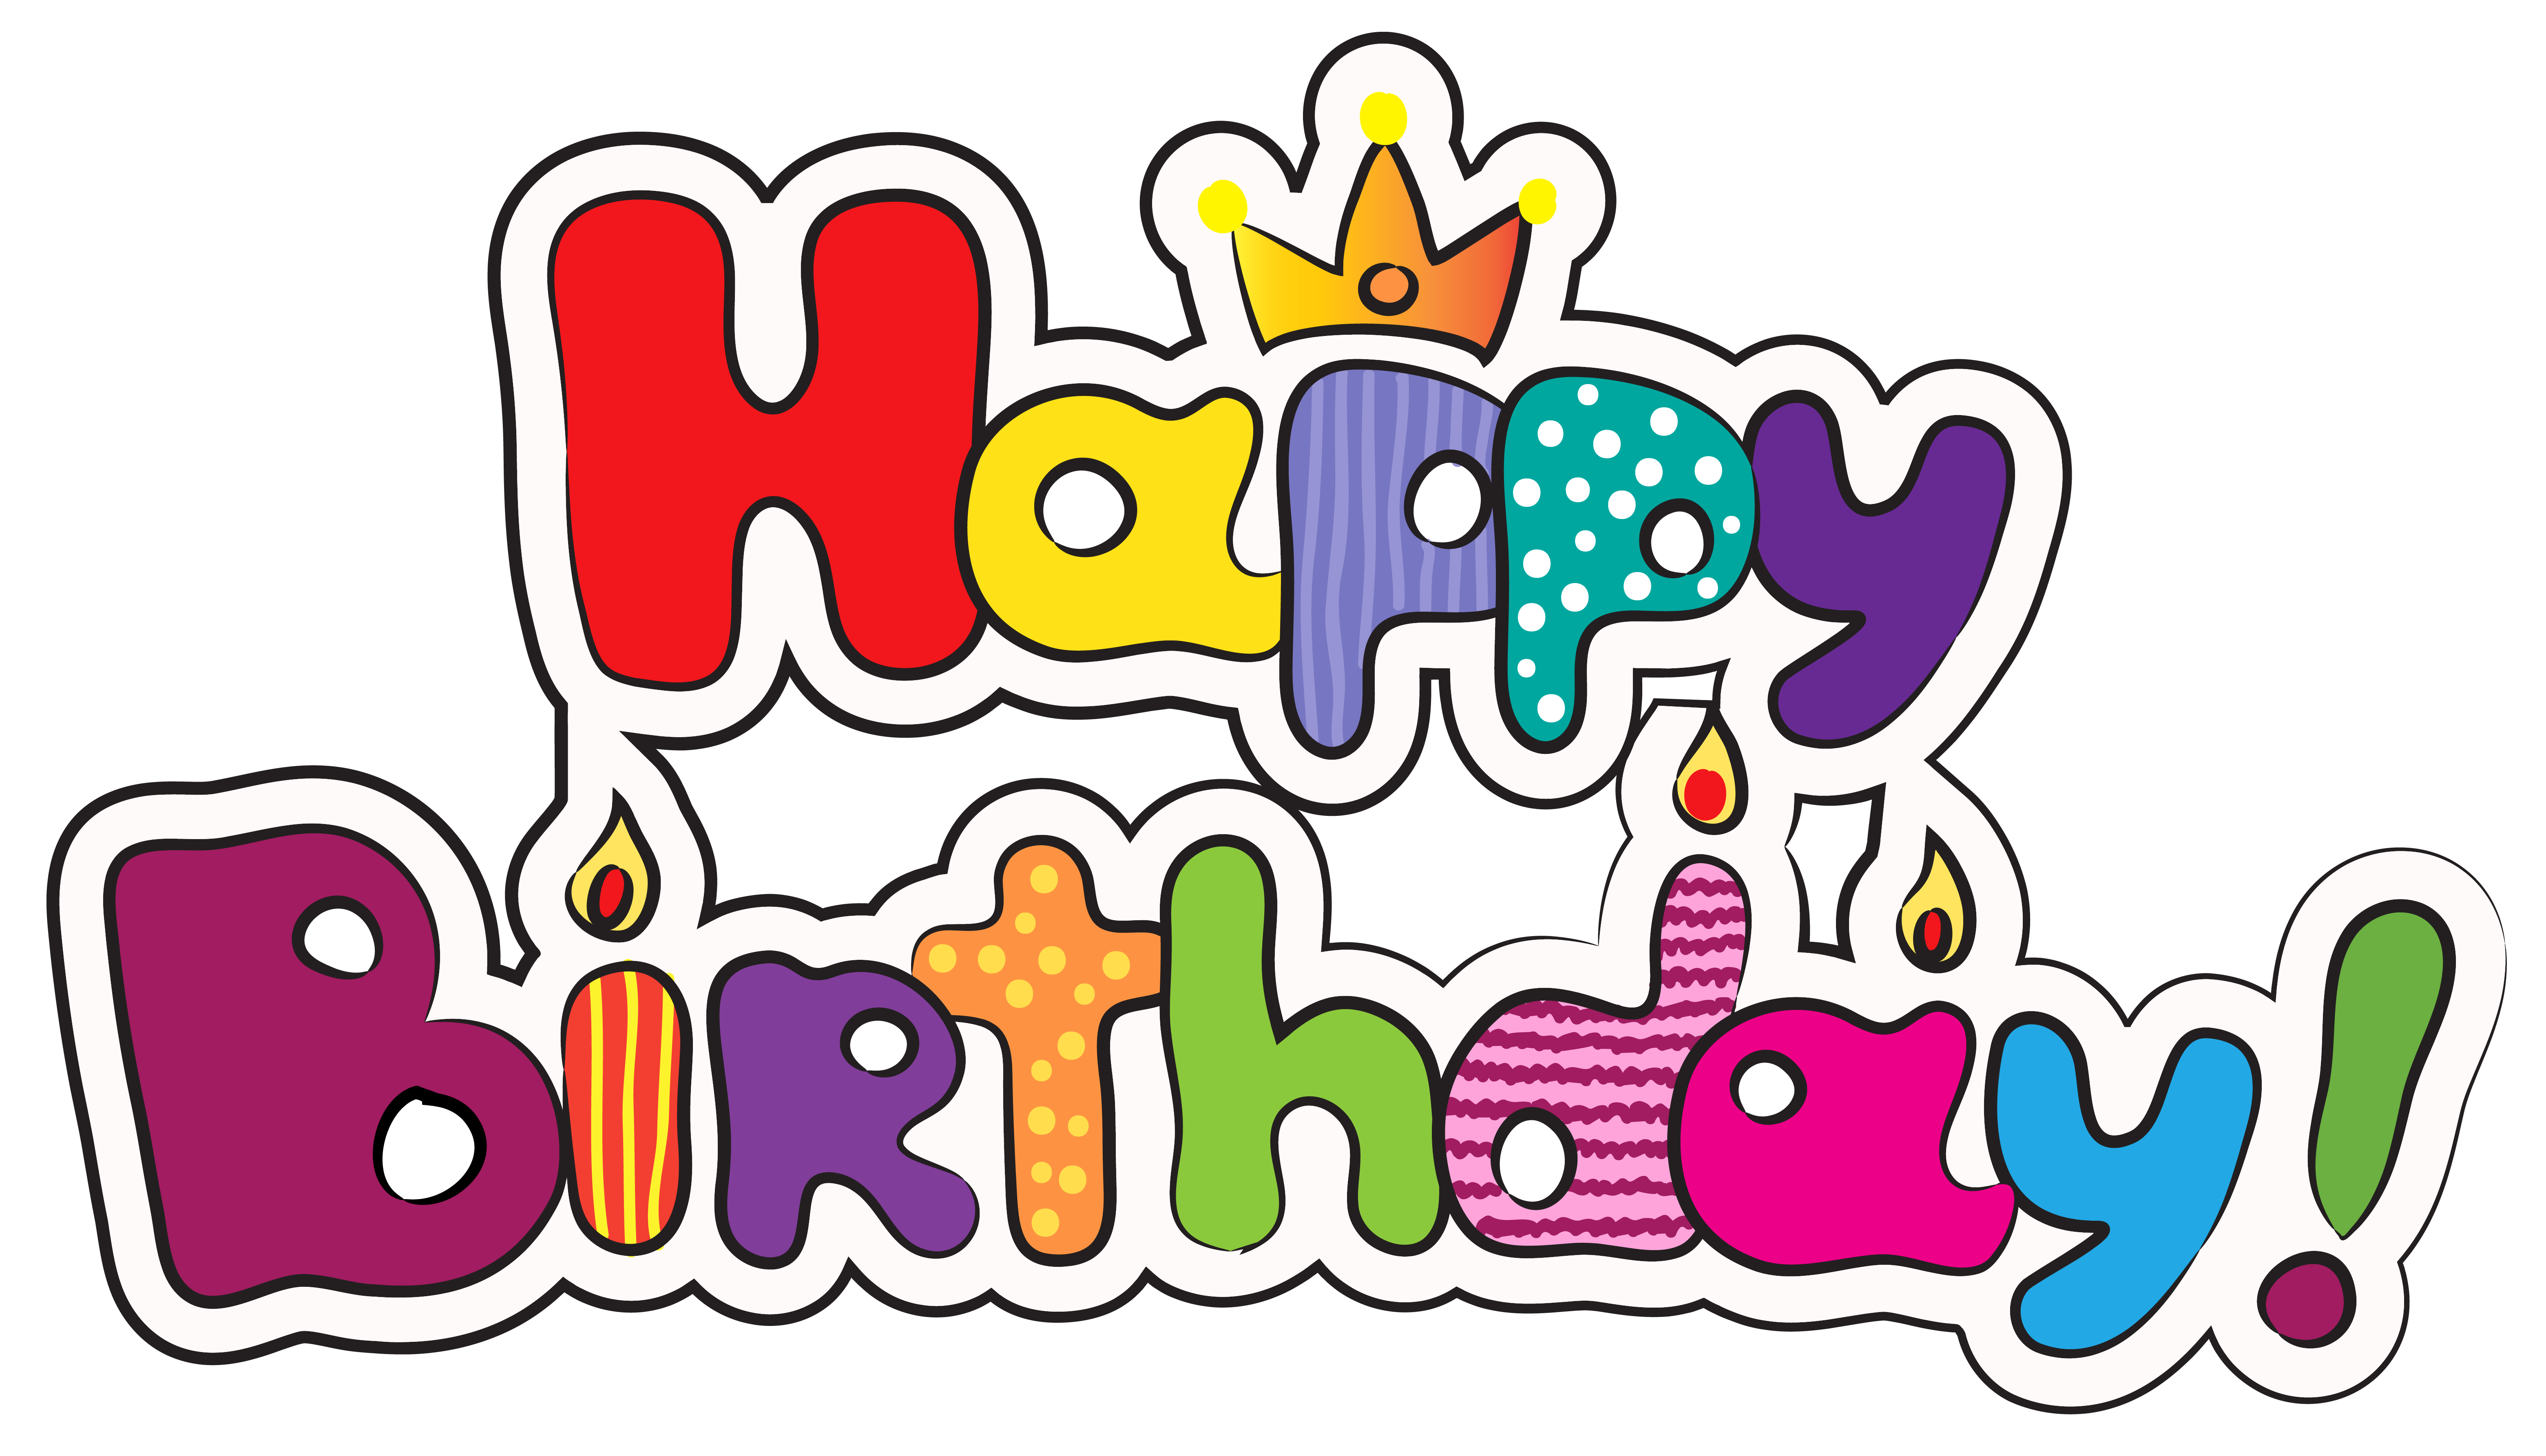 Colorful happy clipart image. Birthday png images svg freeuse download